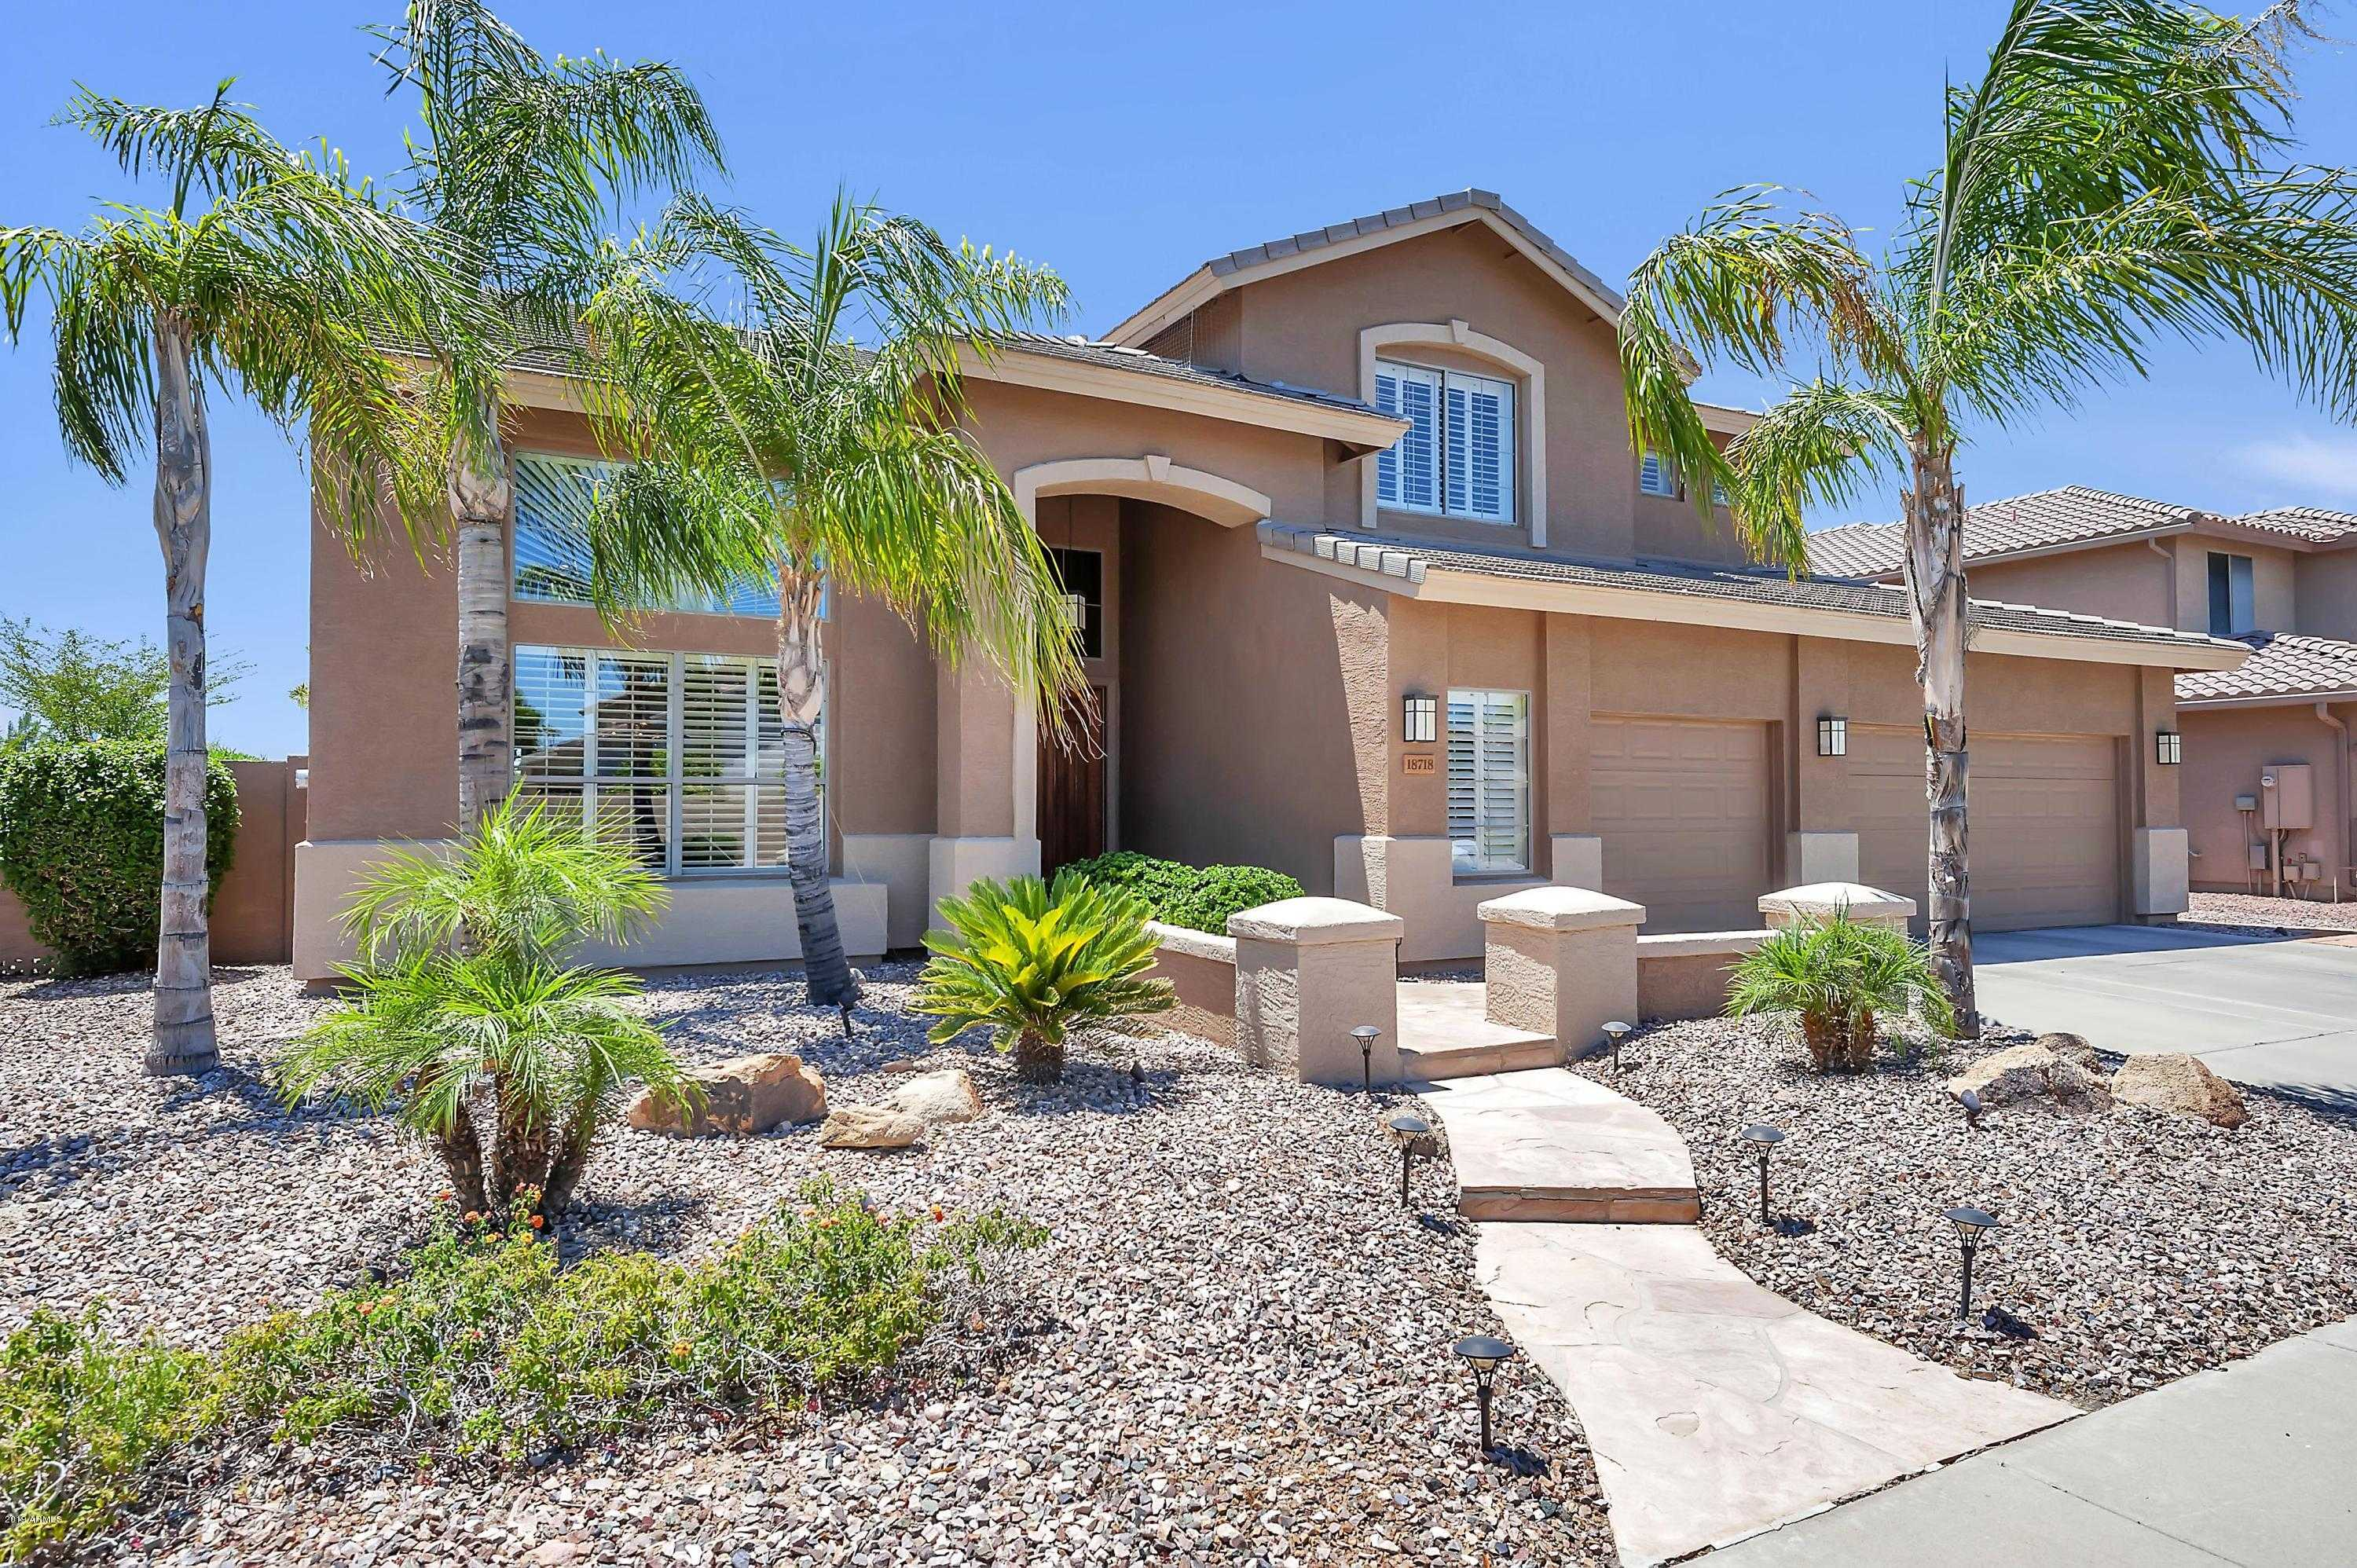 $525,000 - 4Br/3Ba - Home for Sale in Coppercrest / Arrowhead Ranch, Glendale